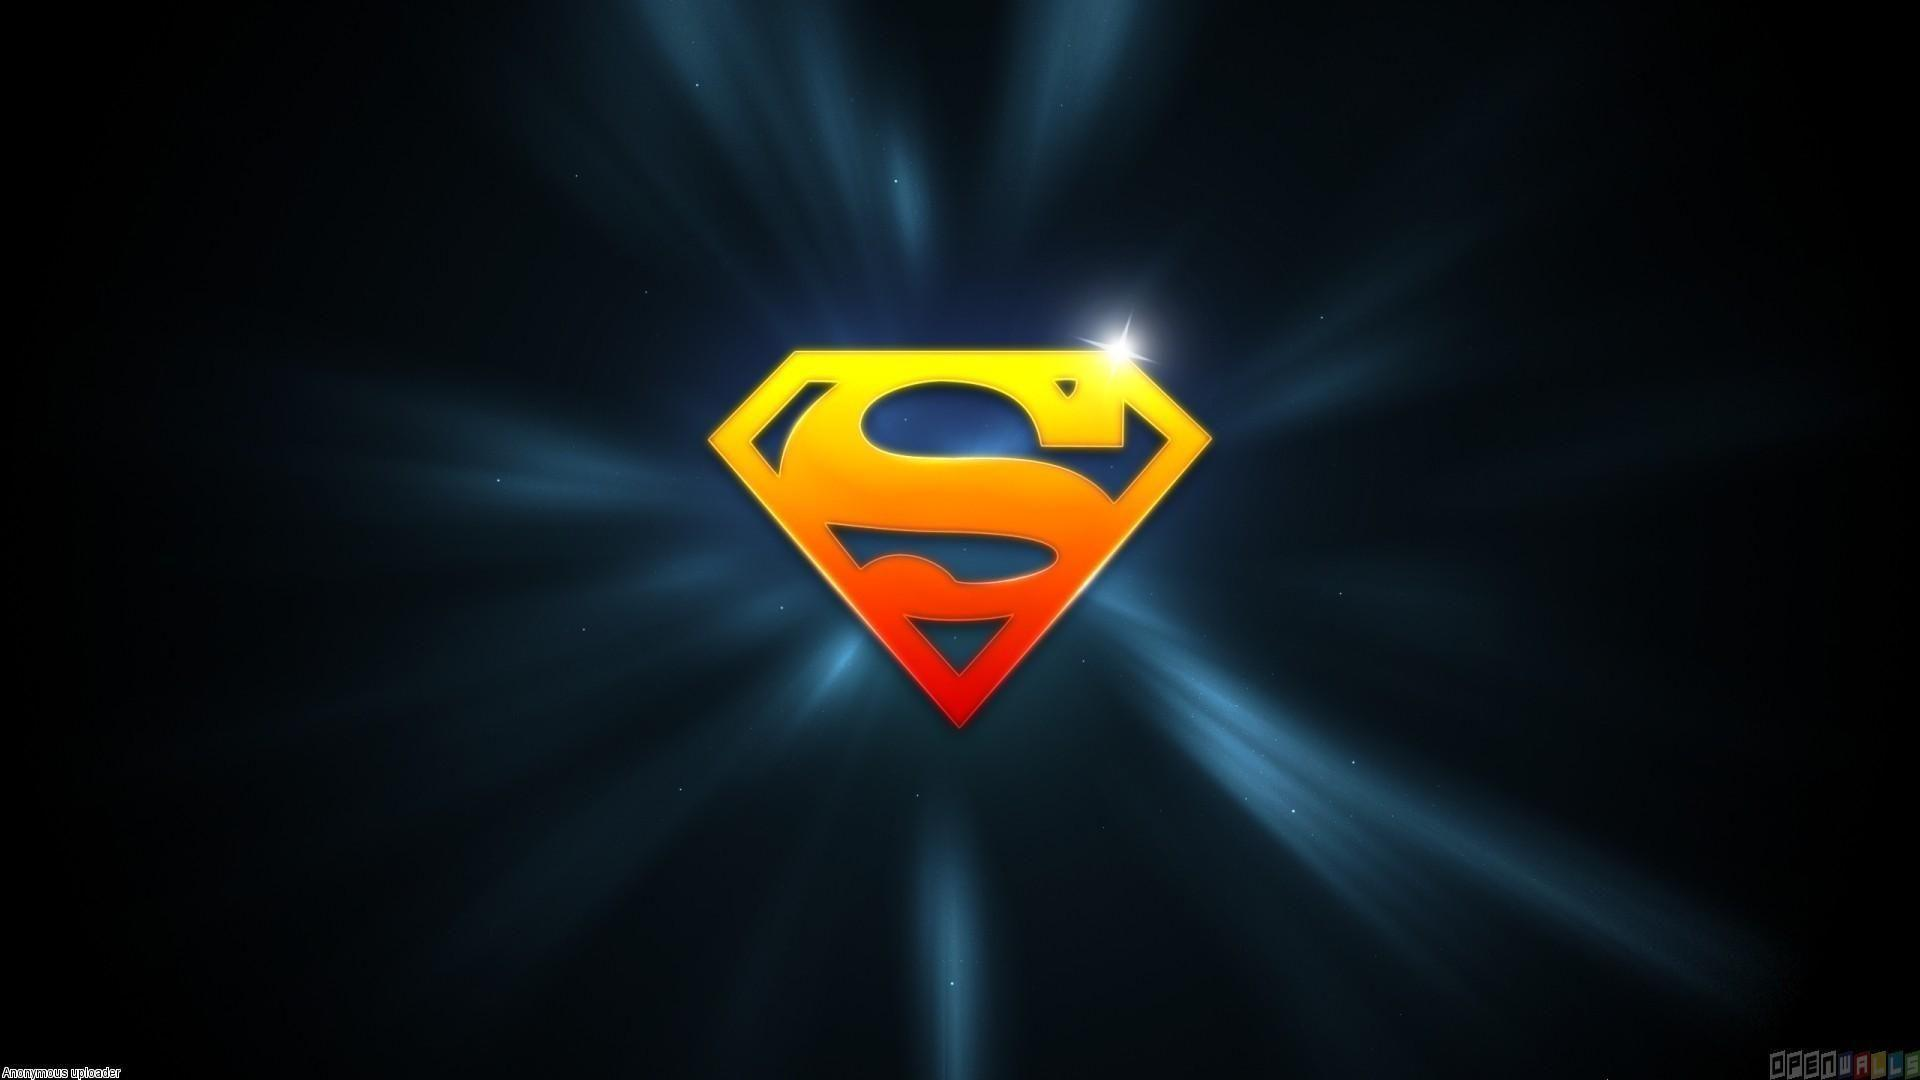 Superman logo wallpapers 2016 wallpaper cave for Great wallpaper ideas